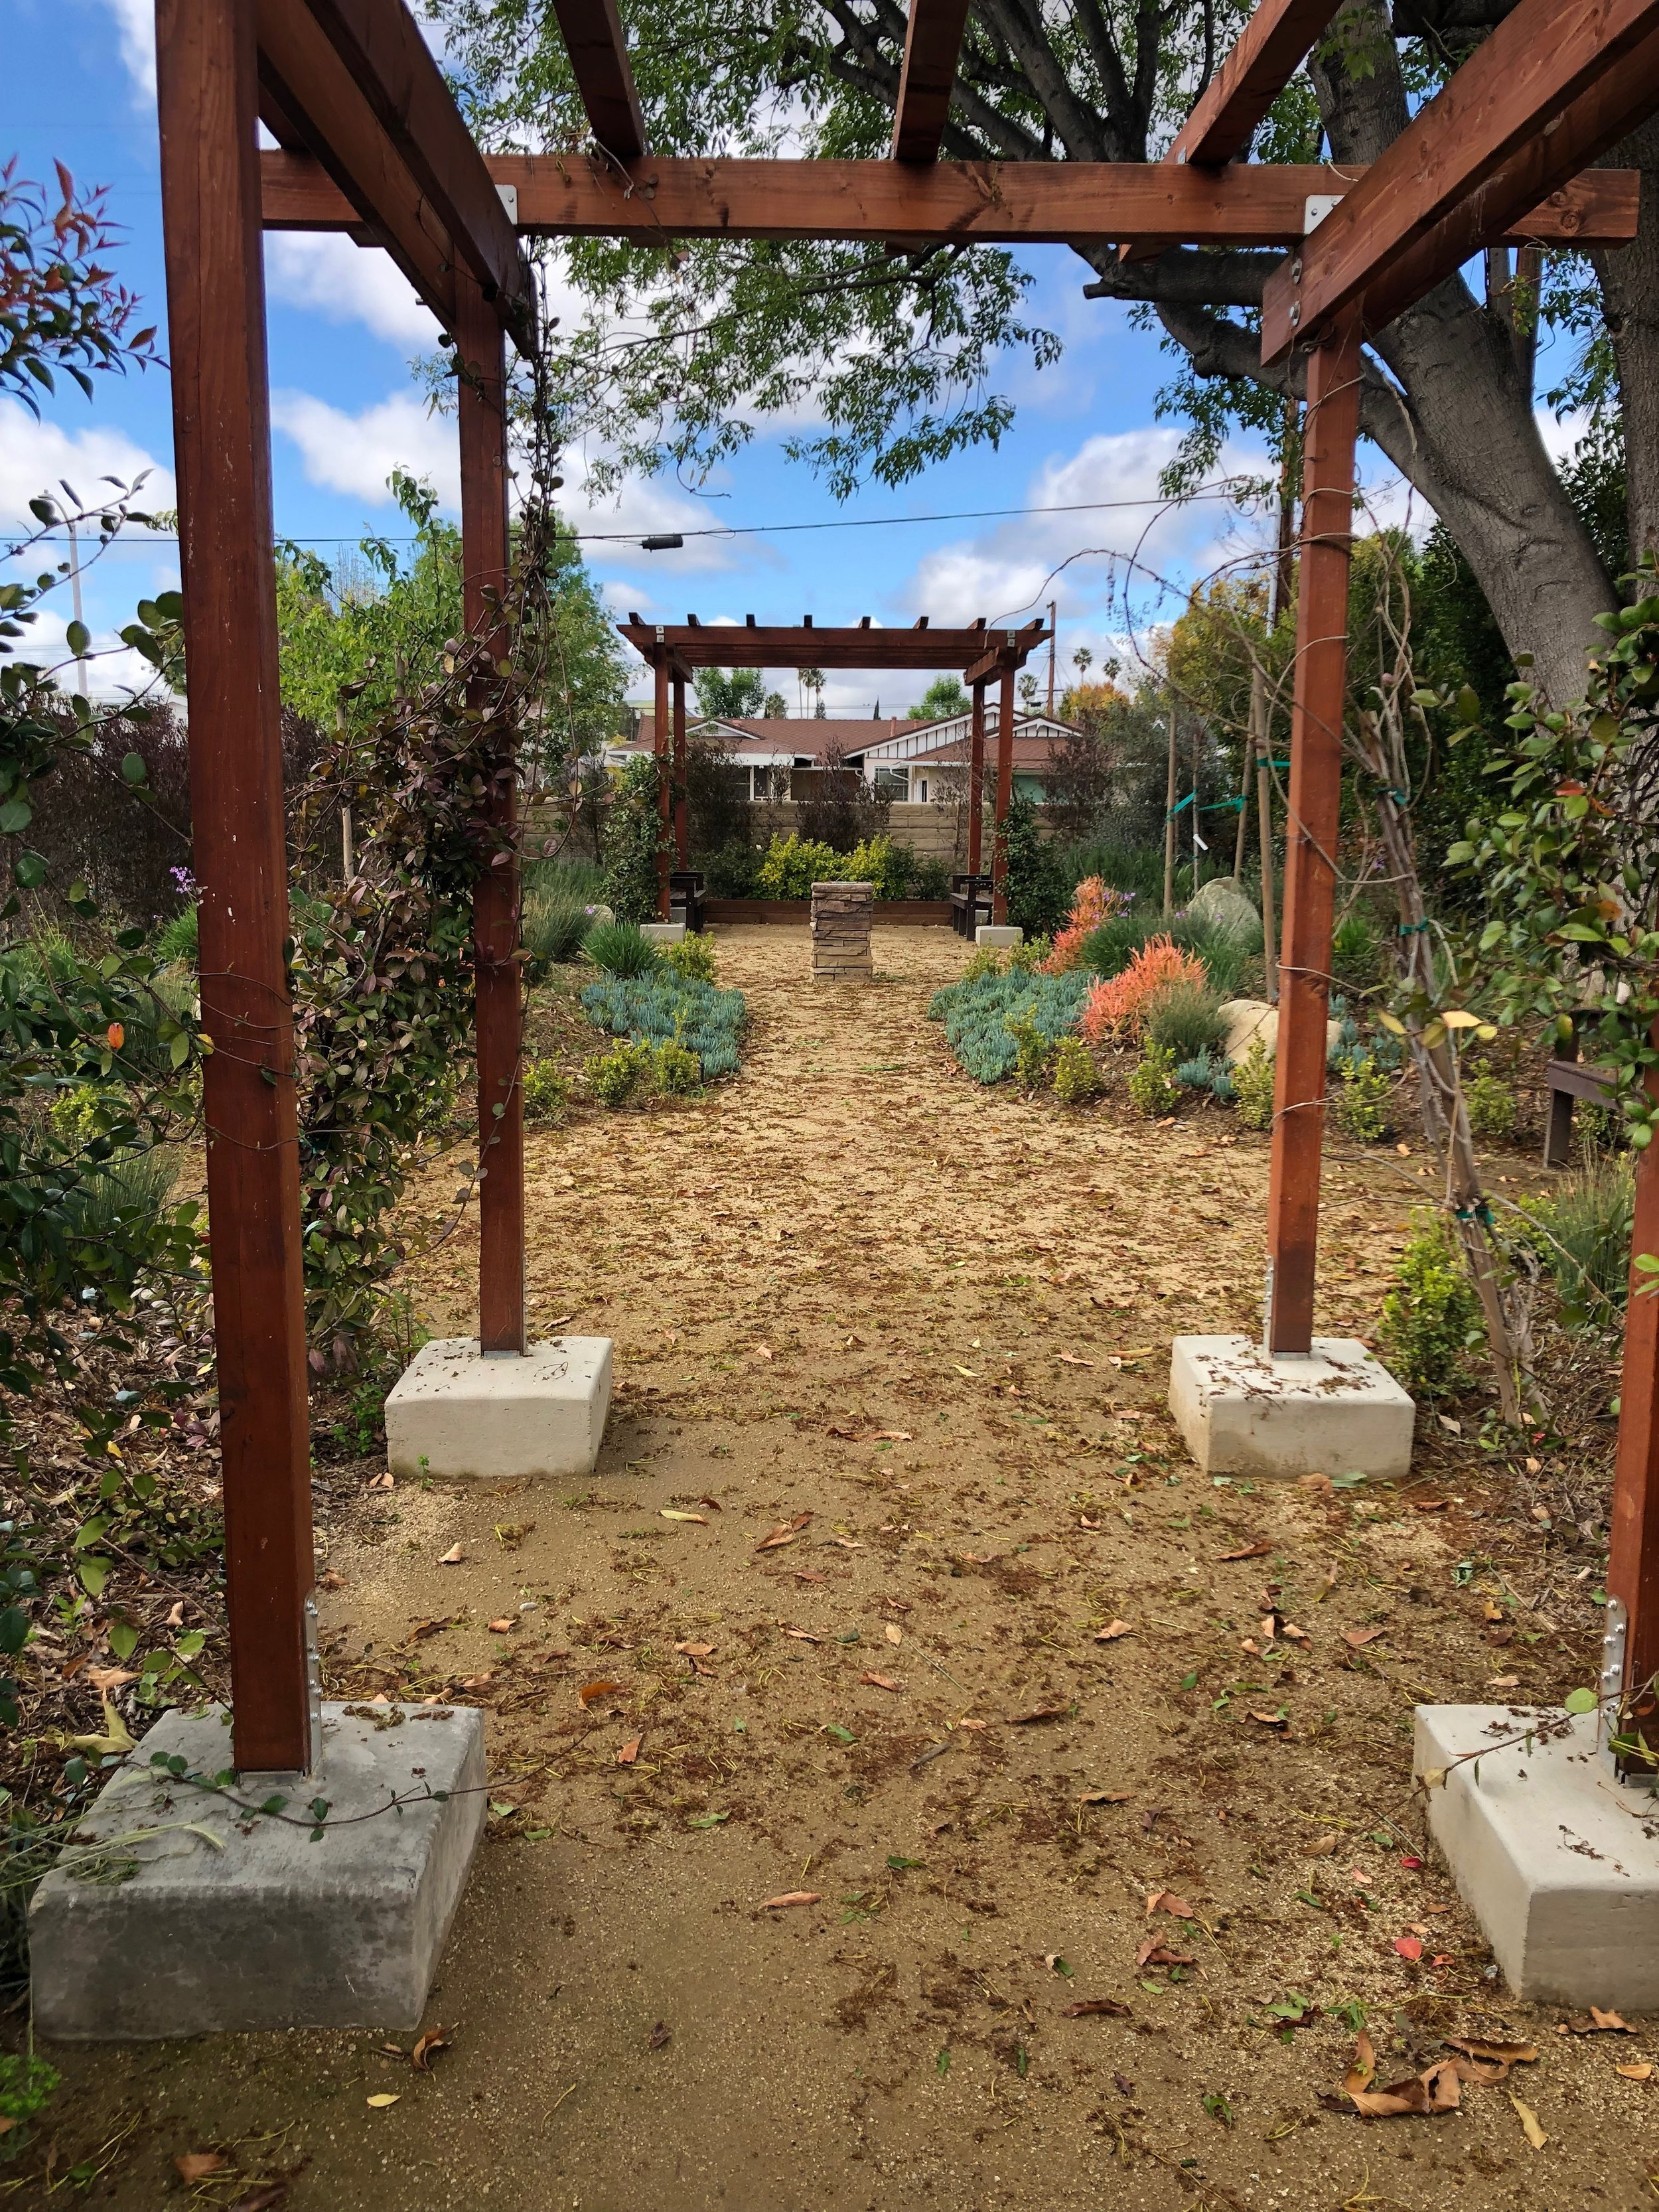 outdoor classroom designed with planting beds and instructional space